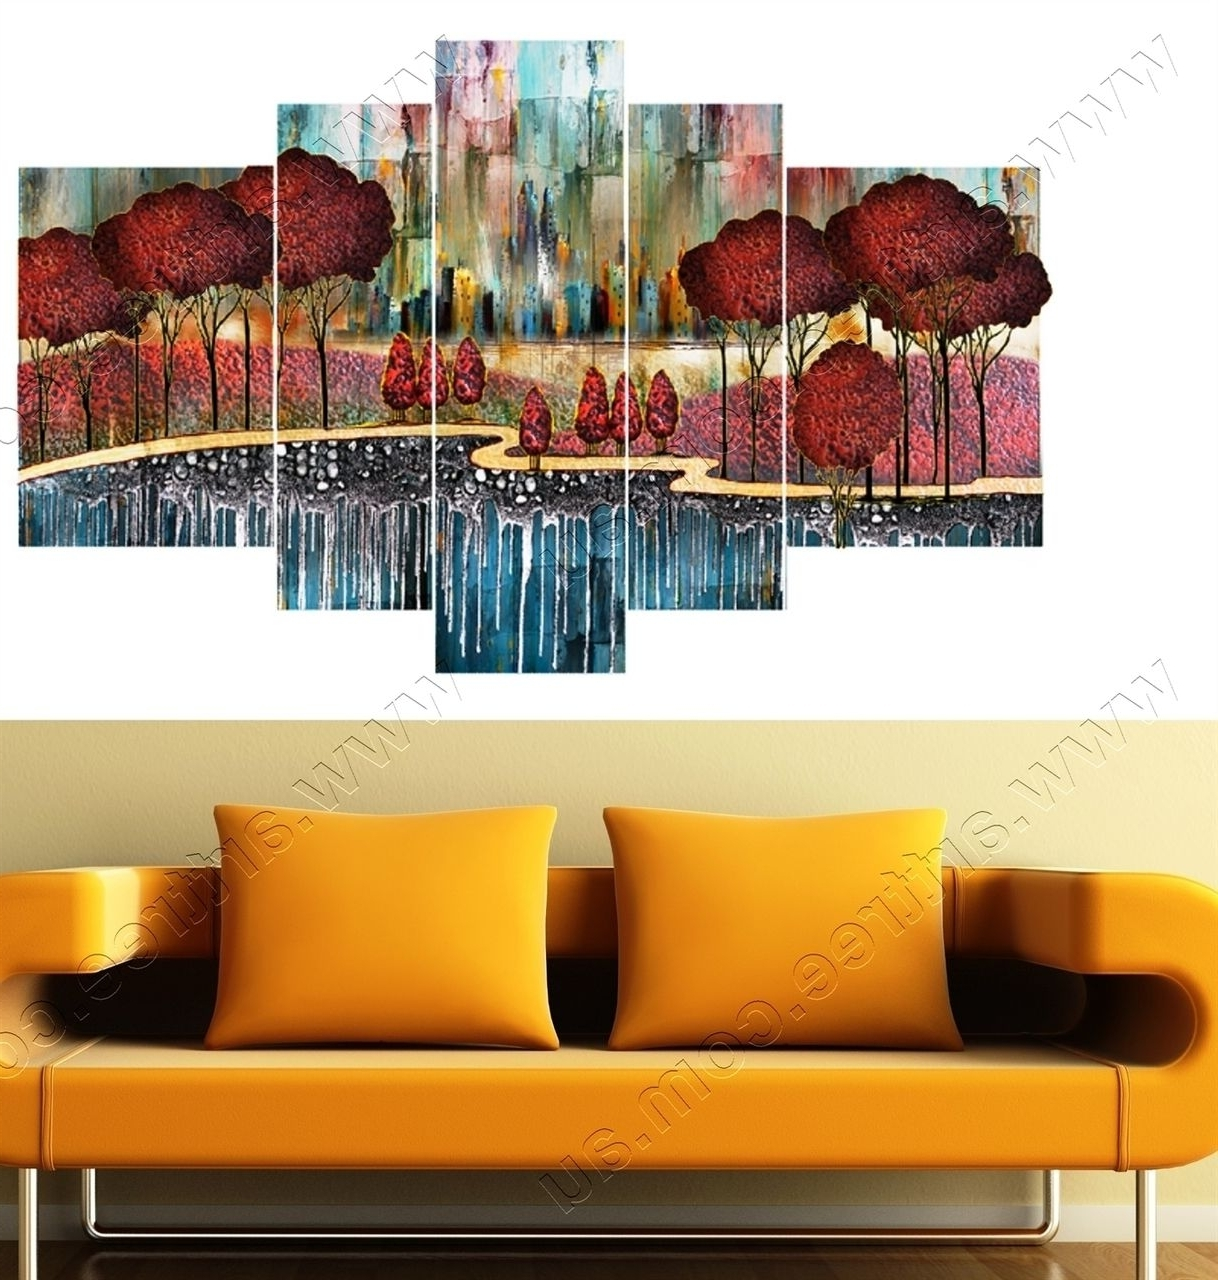 Gold Coast Canvas Wall Art Throughout Famous Red Trees Wall Art Prints Gold Coast – Perfect For Any Decor! (View 7 of 15)